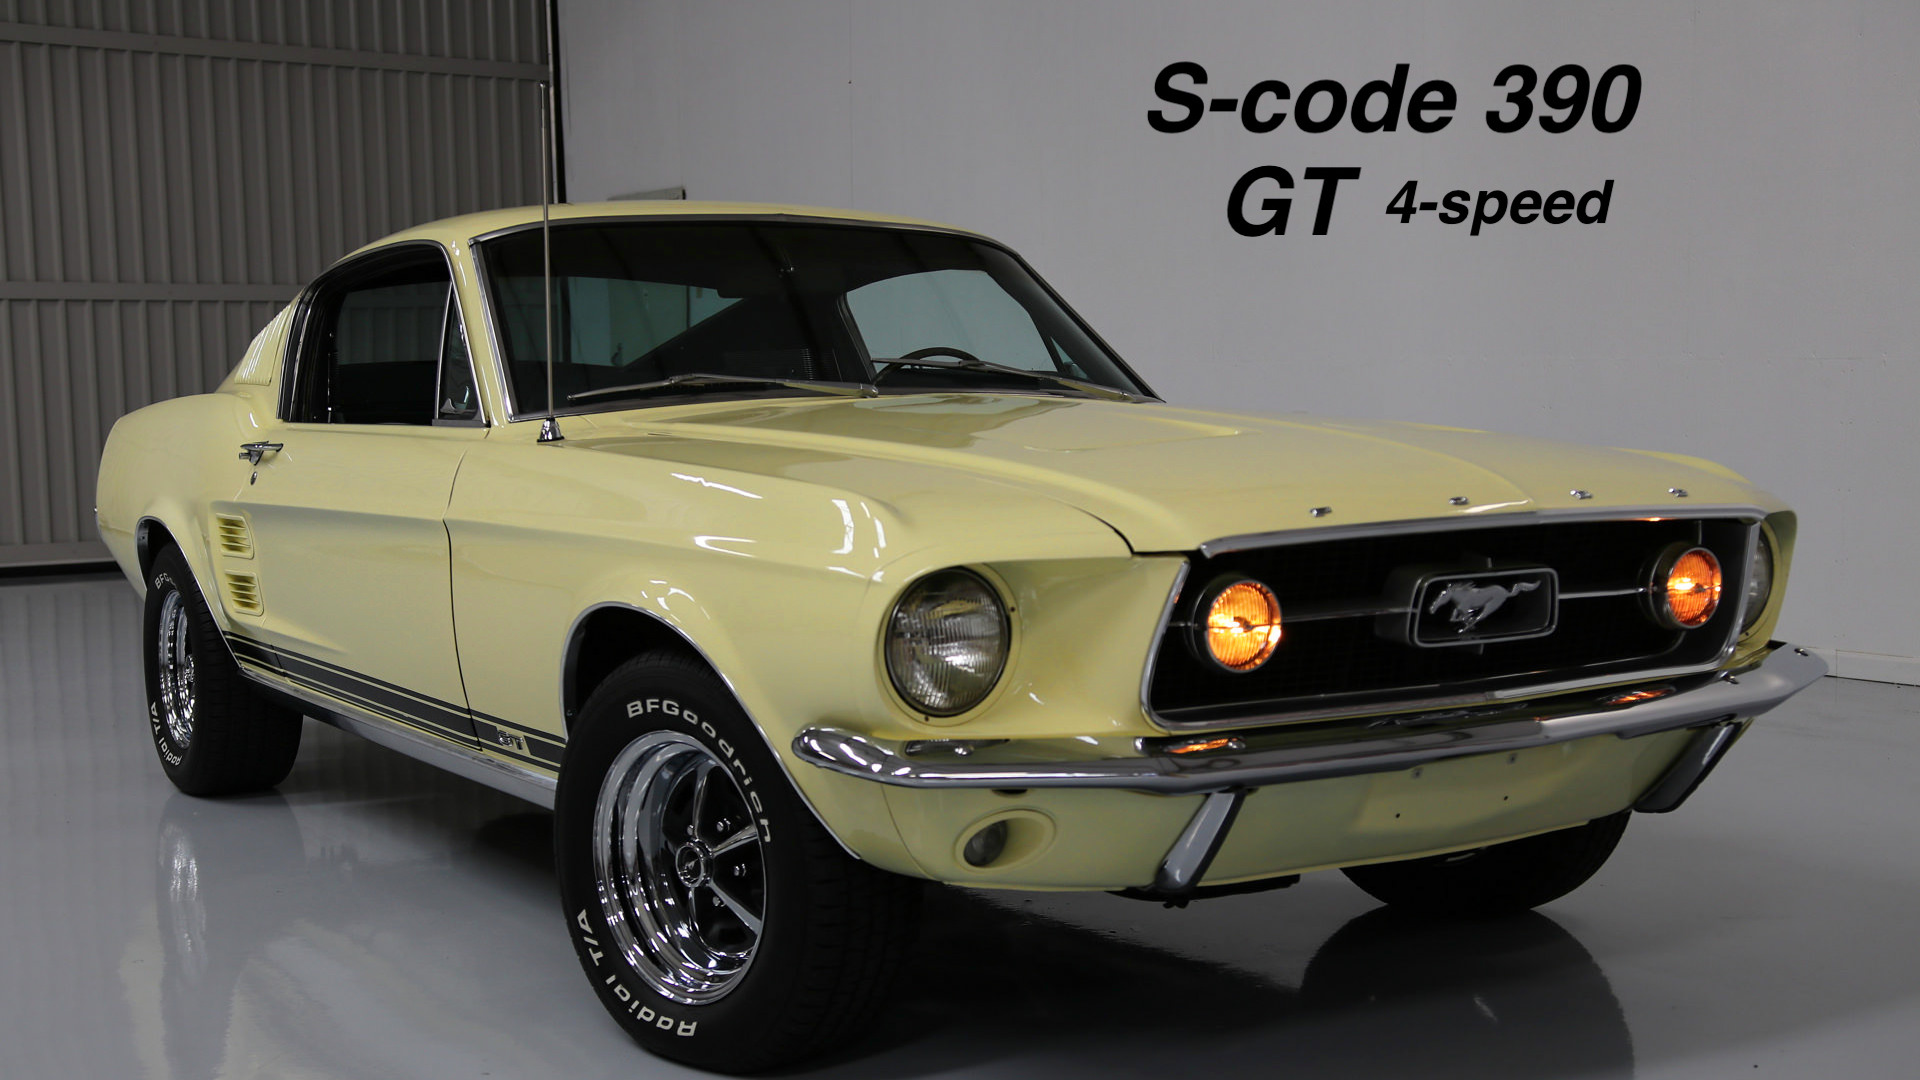 1967 Mustang GT 390 S code Fastback For Sale MyRod